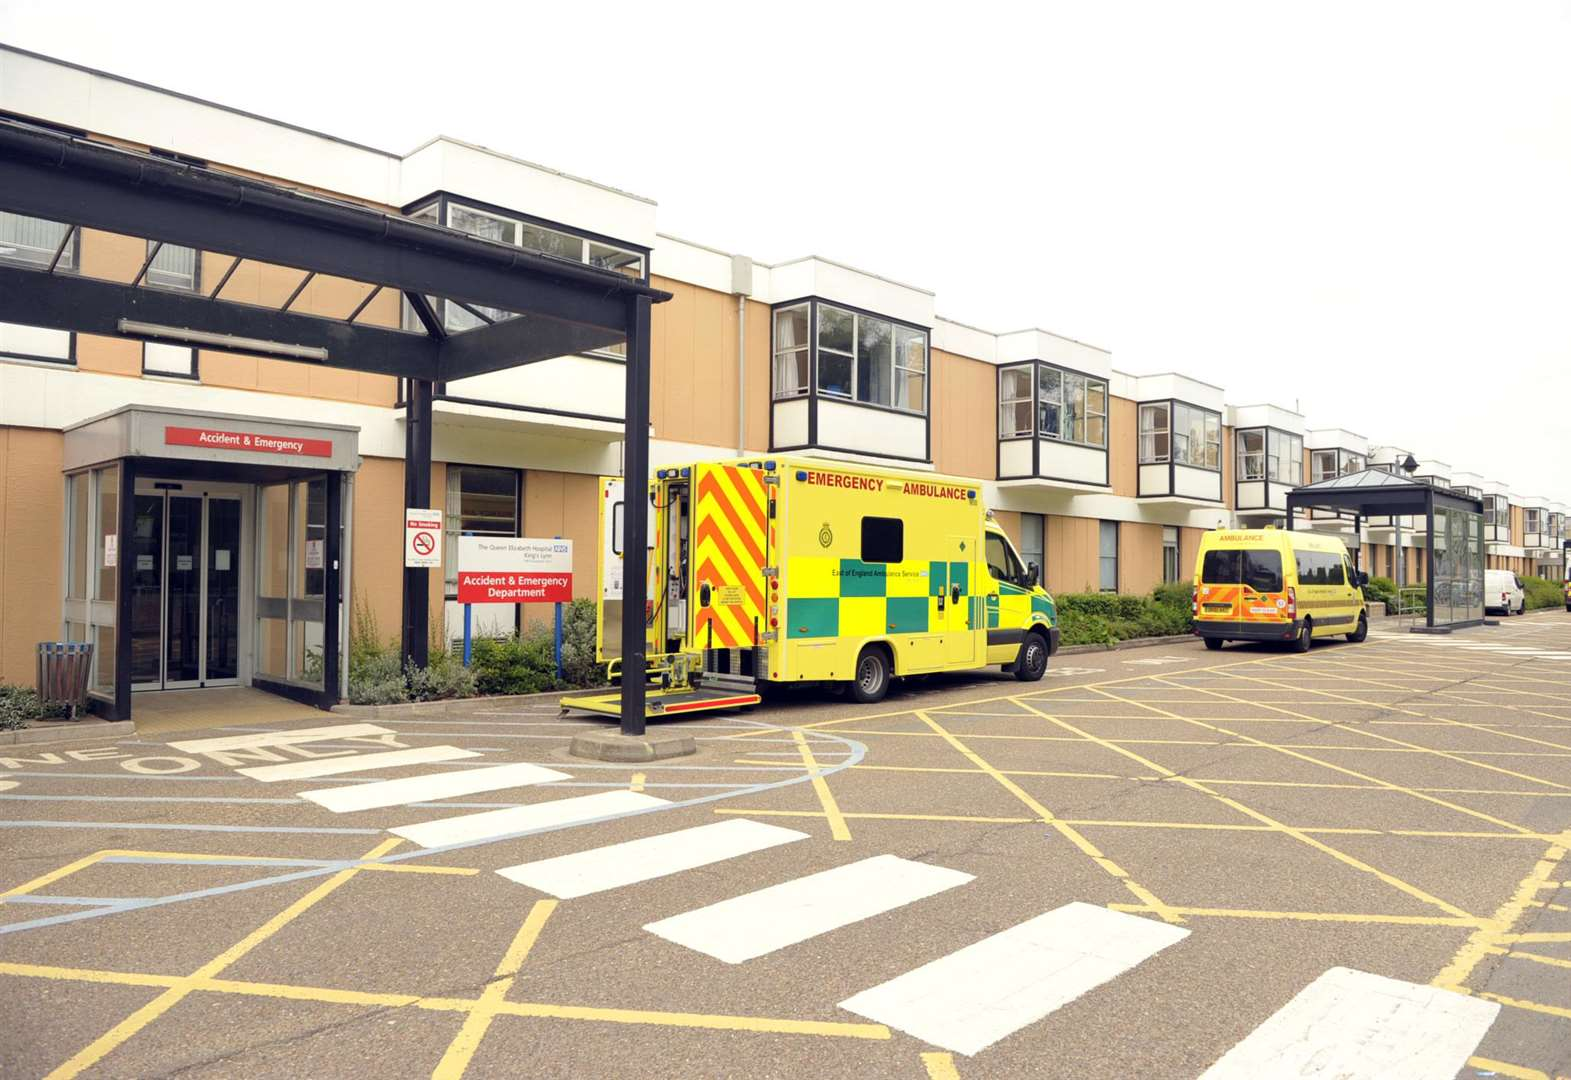 A&E attendance rise recorded at King's Lynn hospital